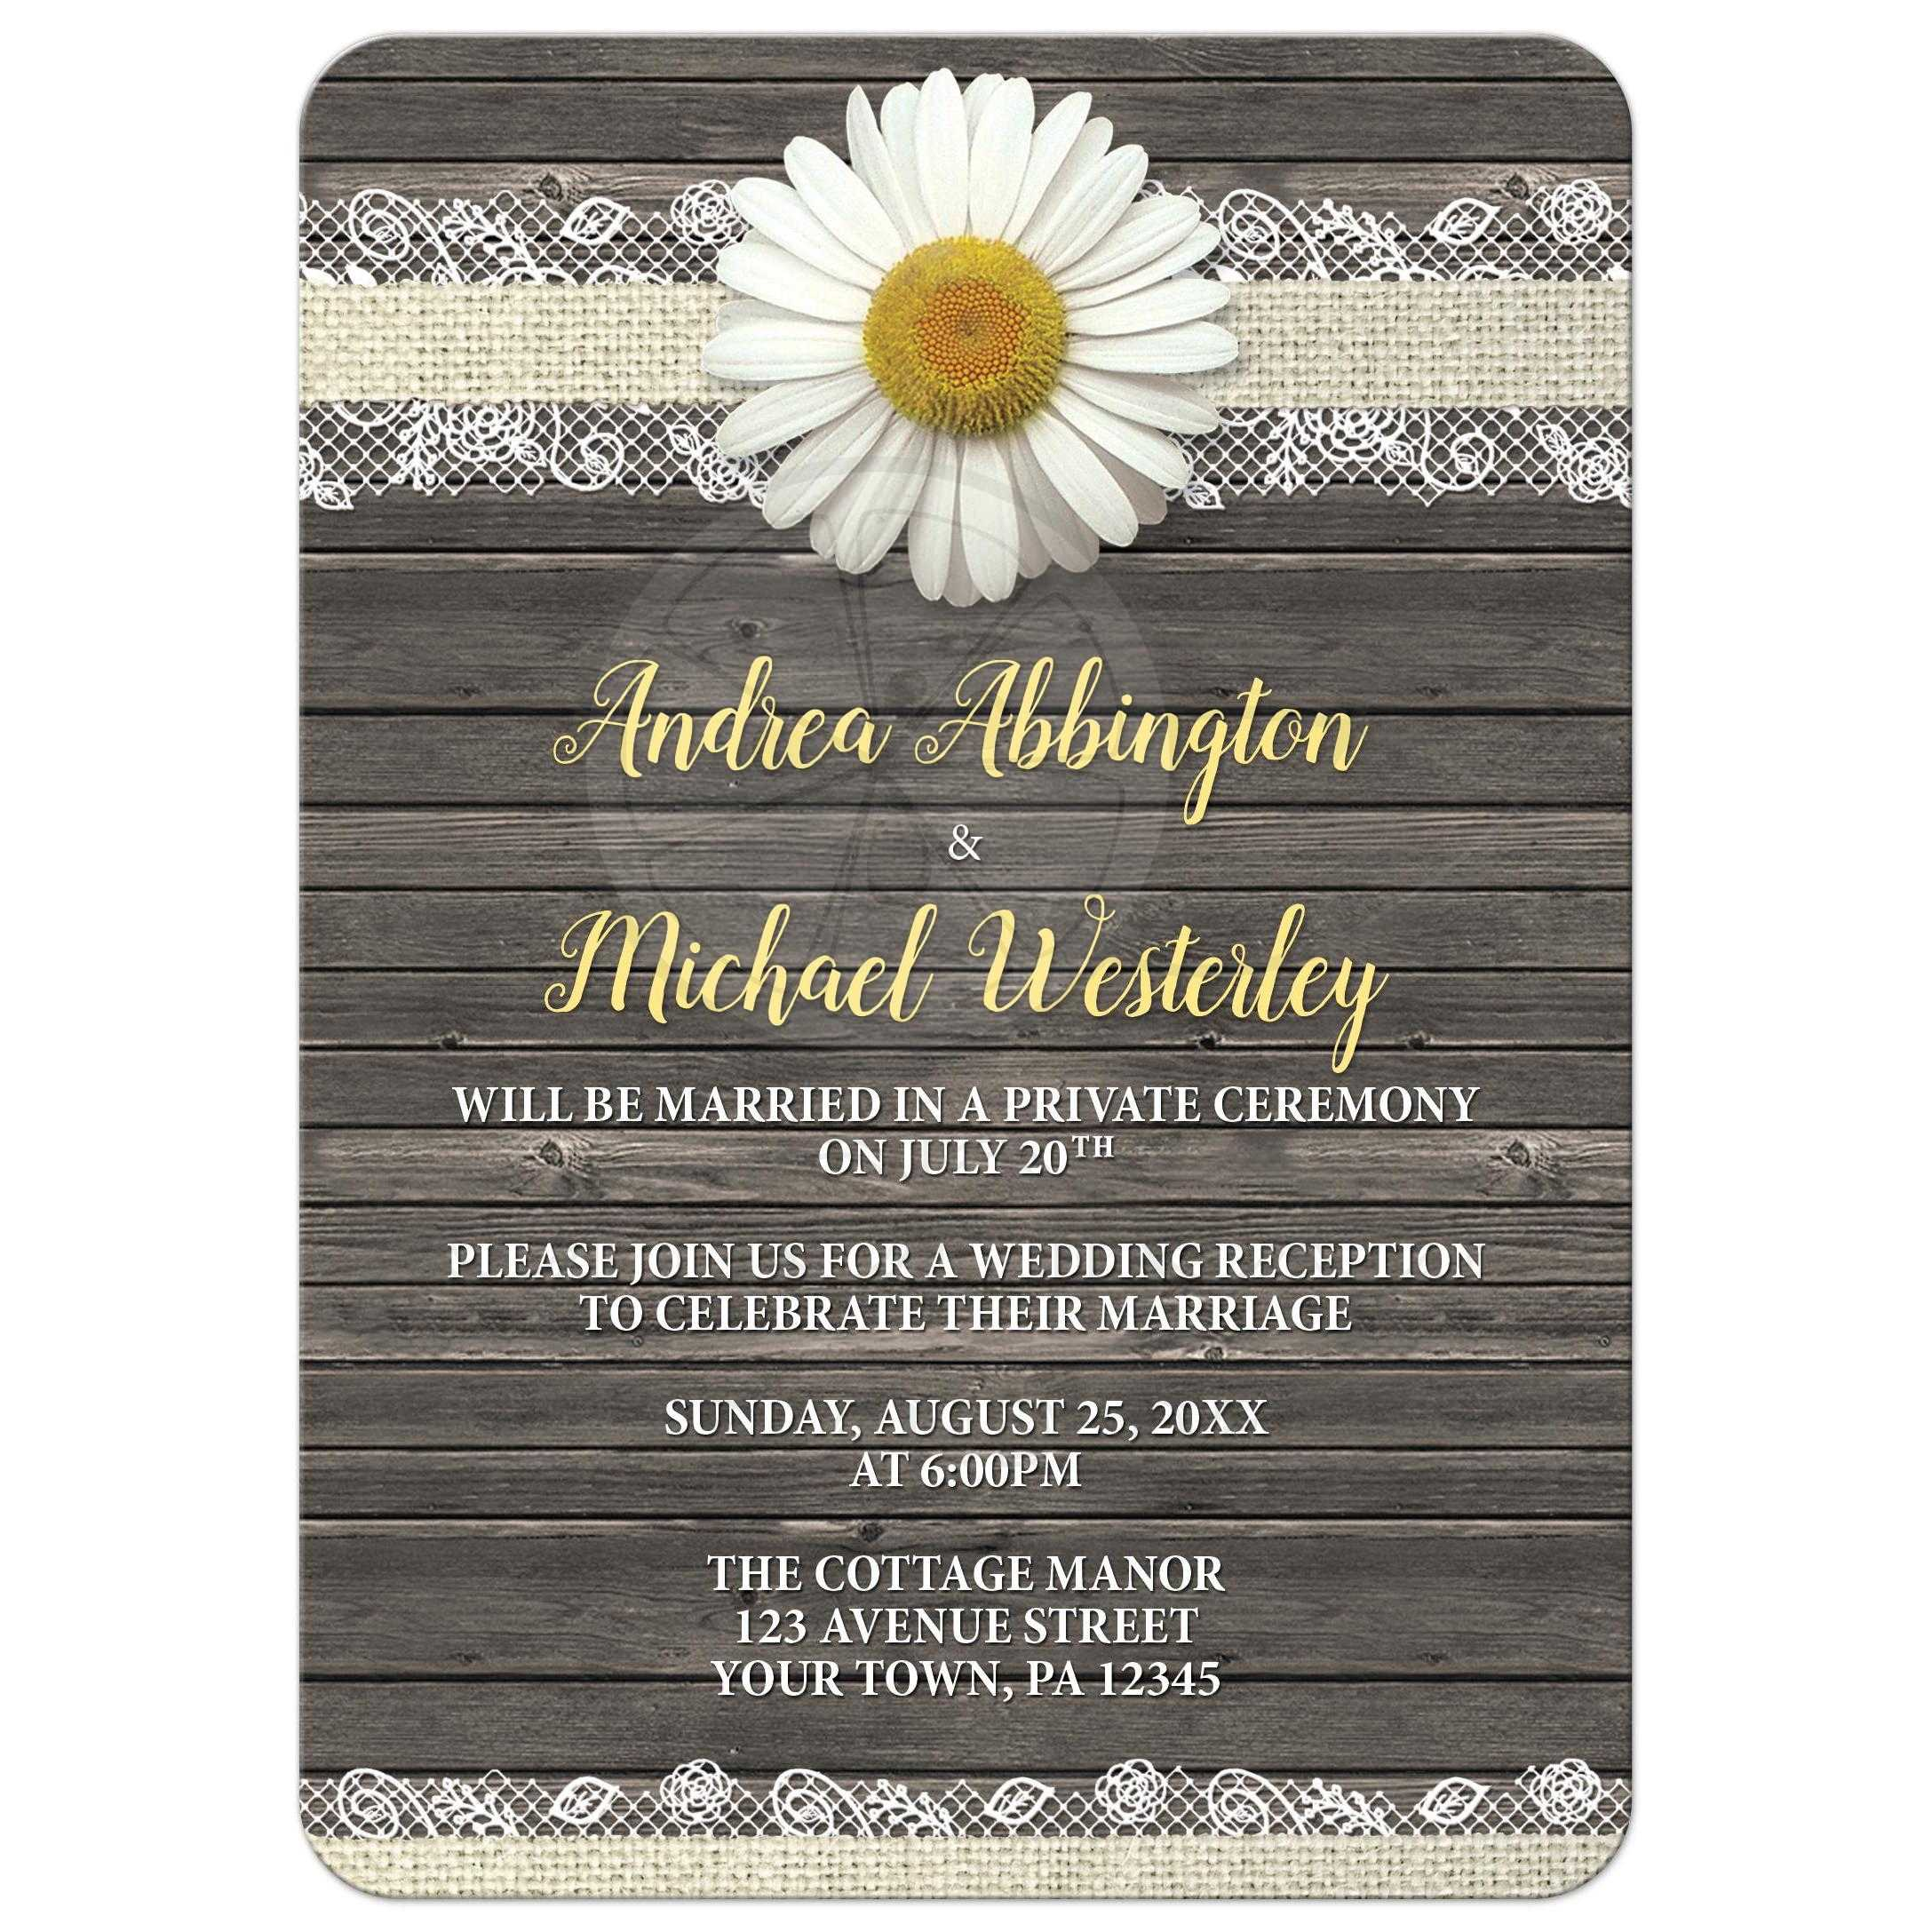 Reception Only Invitations Daisy Burlap and Lace Wood